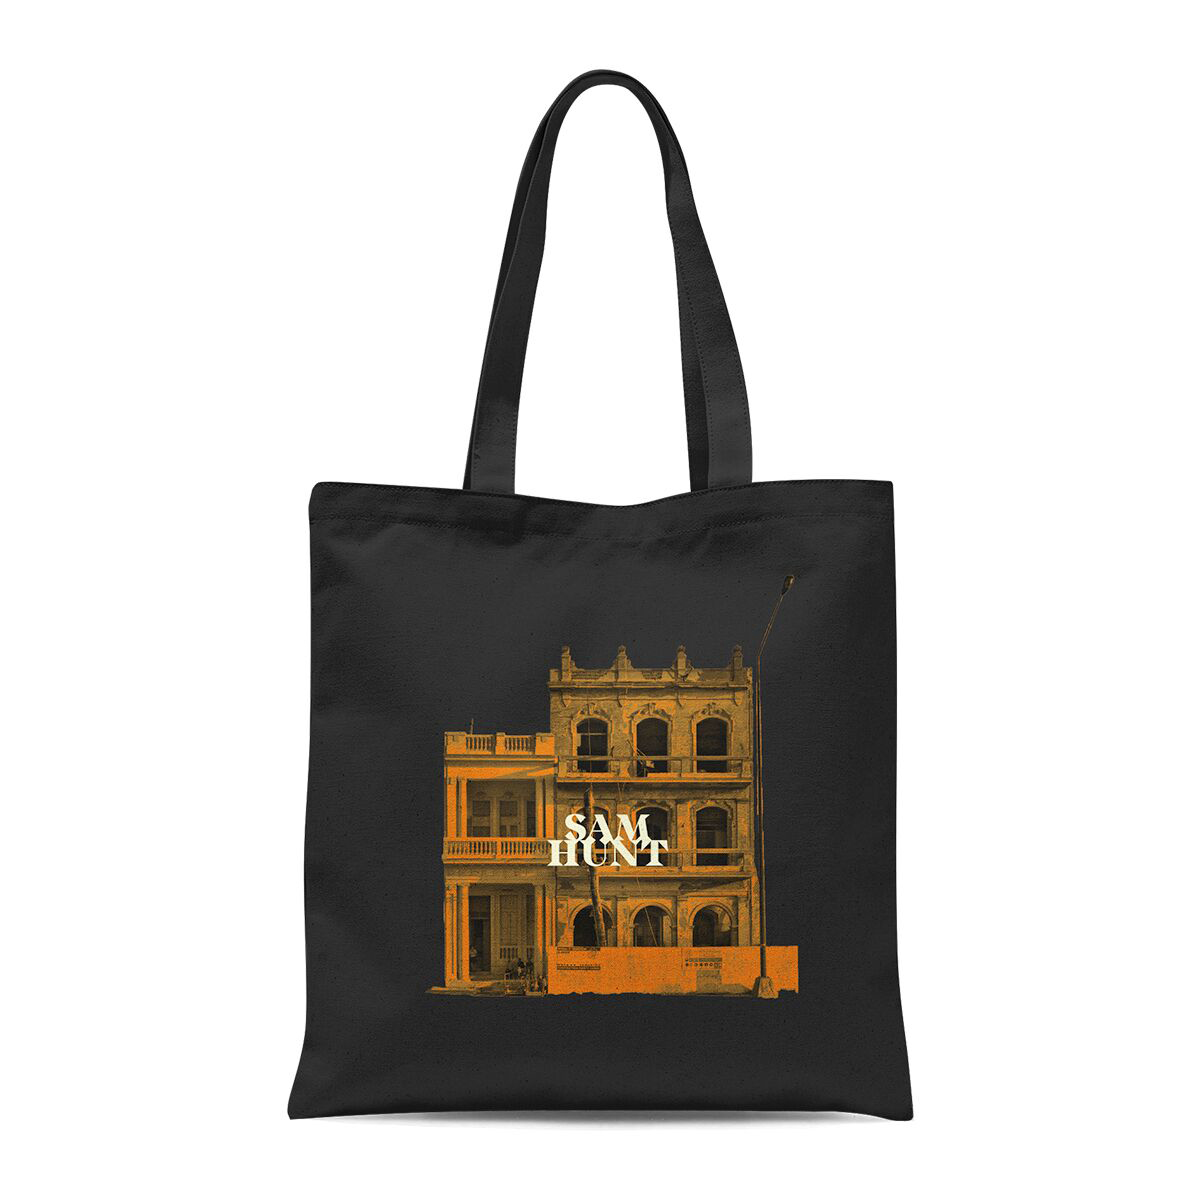 Downtown's Dead Black Tote Bag